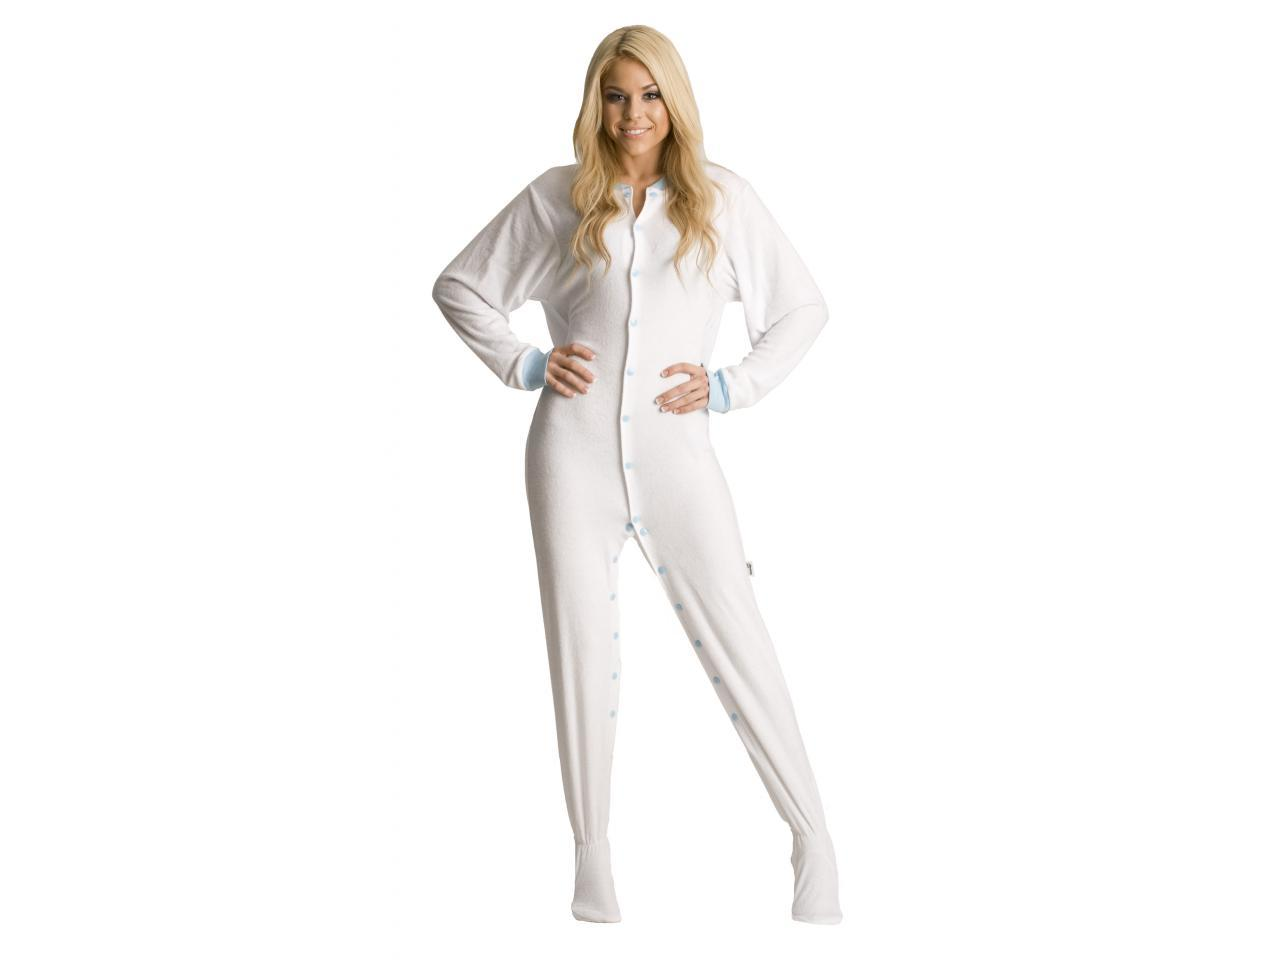 White Terry Cloth Adult Footed Pajamas from JumpinJammerz